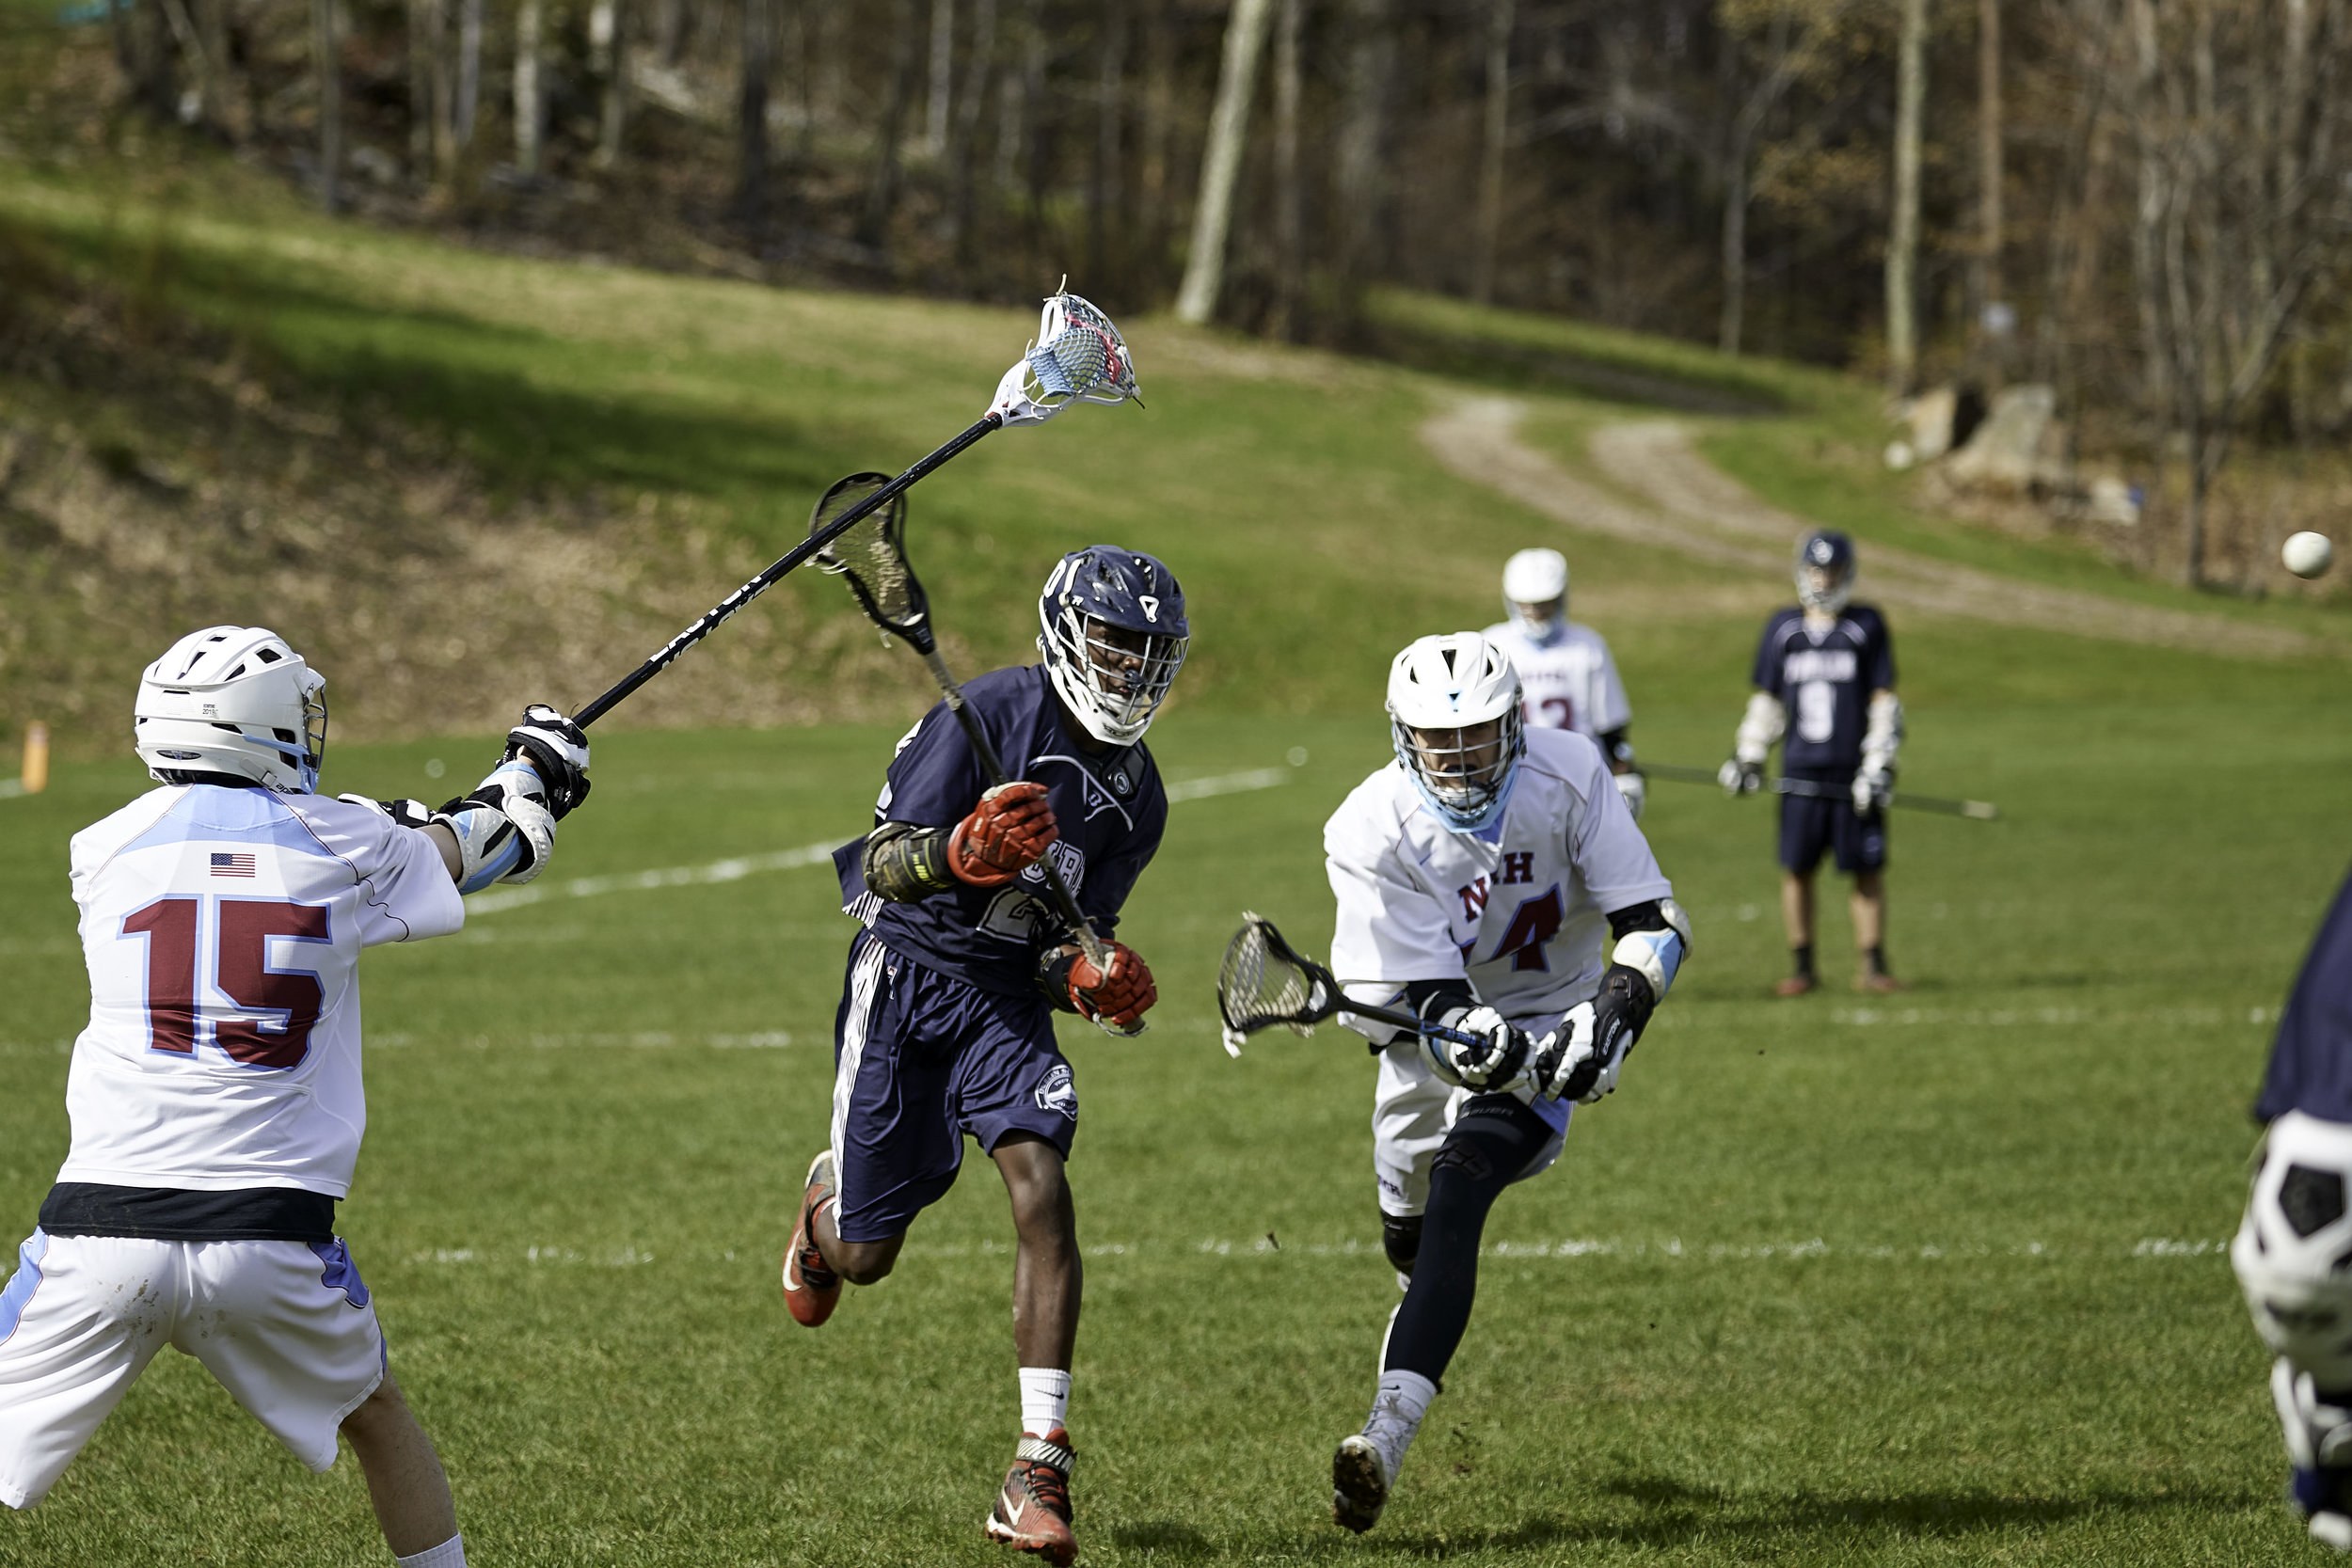 Boys Lax vs Northfield Mount Hermon JV - May 15 2019 - 0027.jpg